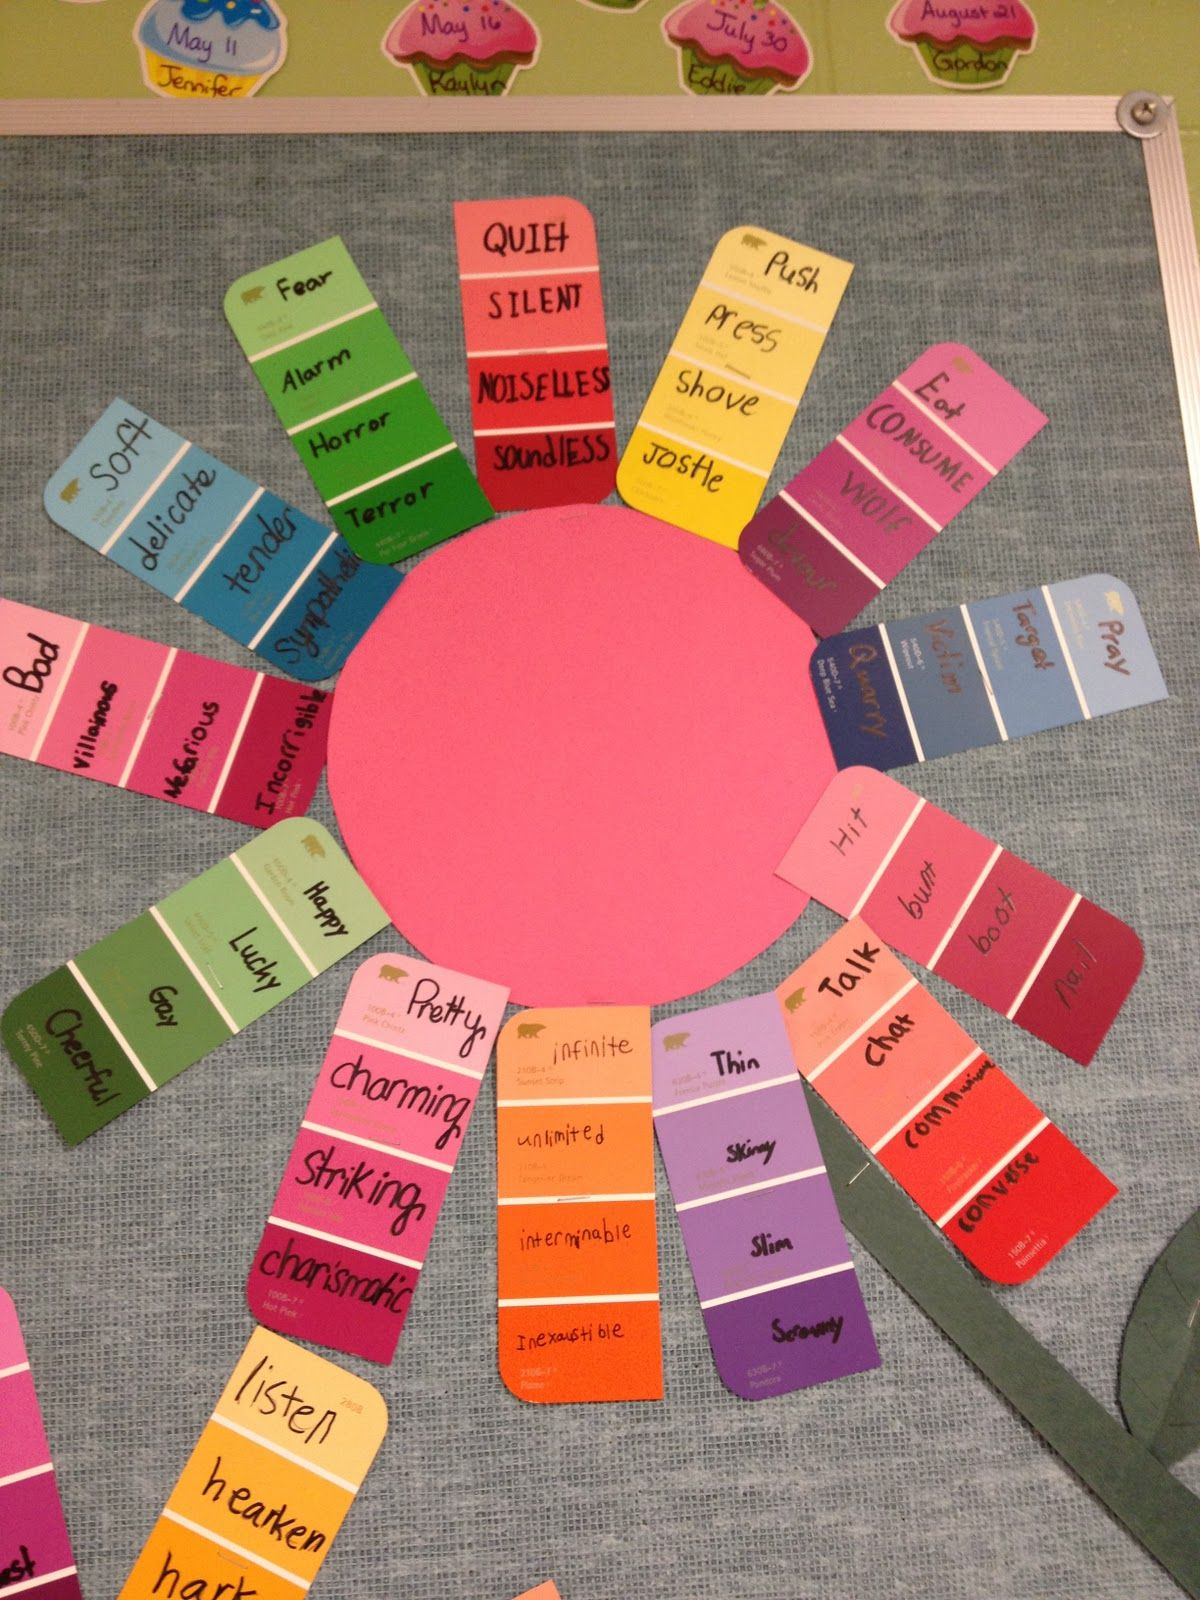 Synonym garden teaching english pinterest kind - Synonym basteln ...